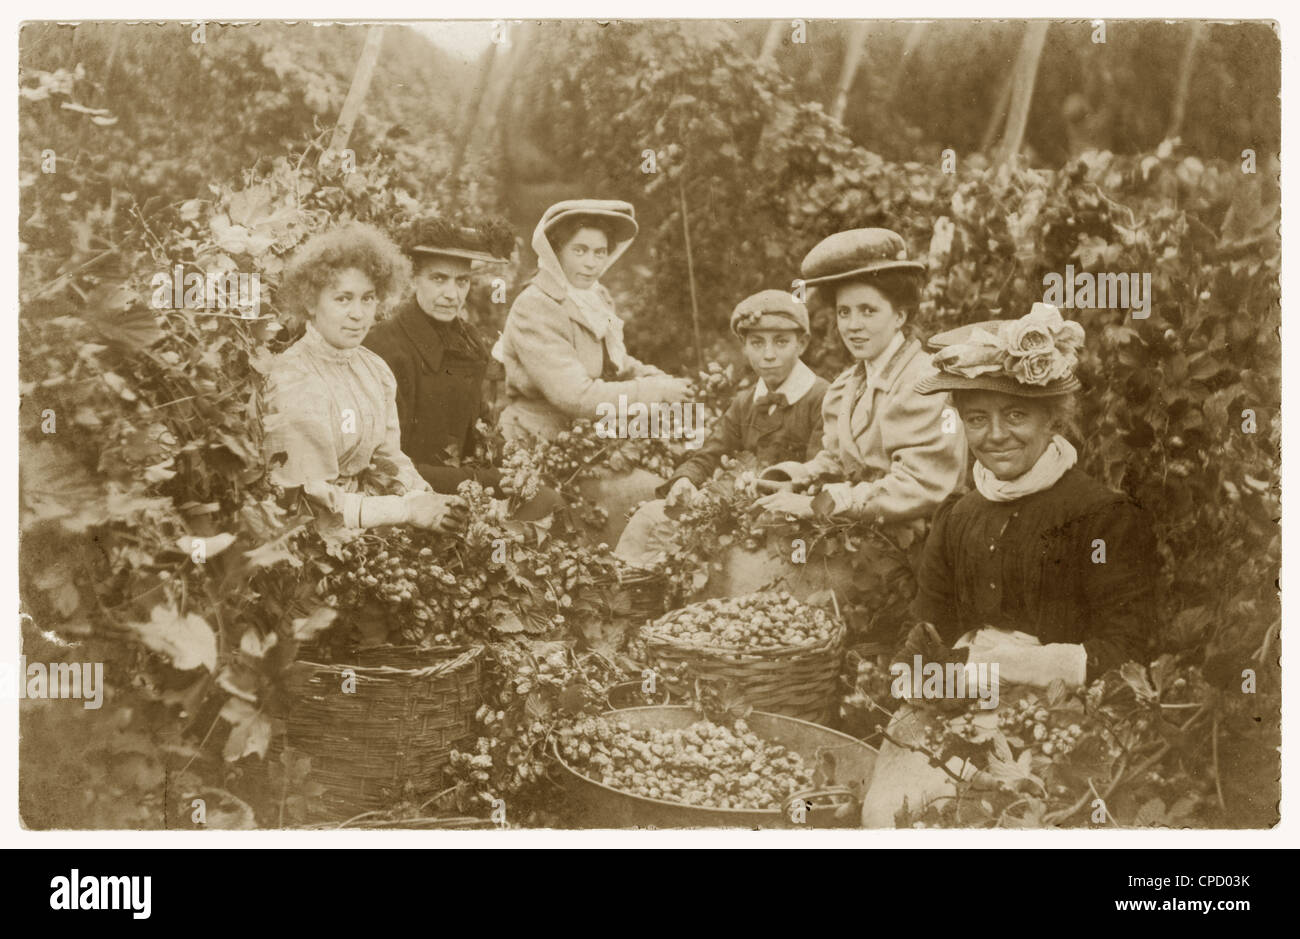 Edwardian postcard of hop pickers, on working holiday, possibly in Kent, U.K - Stock Image